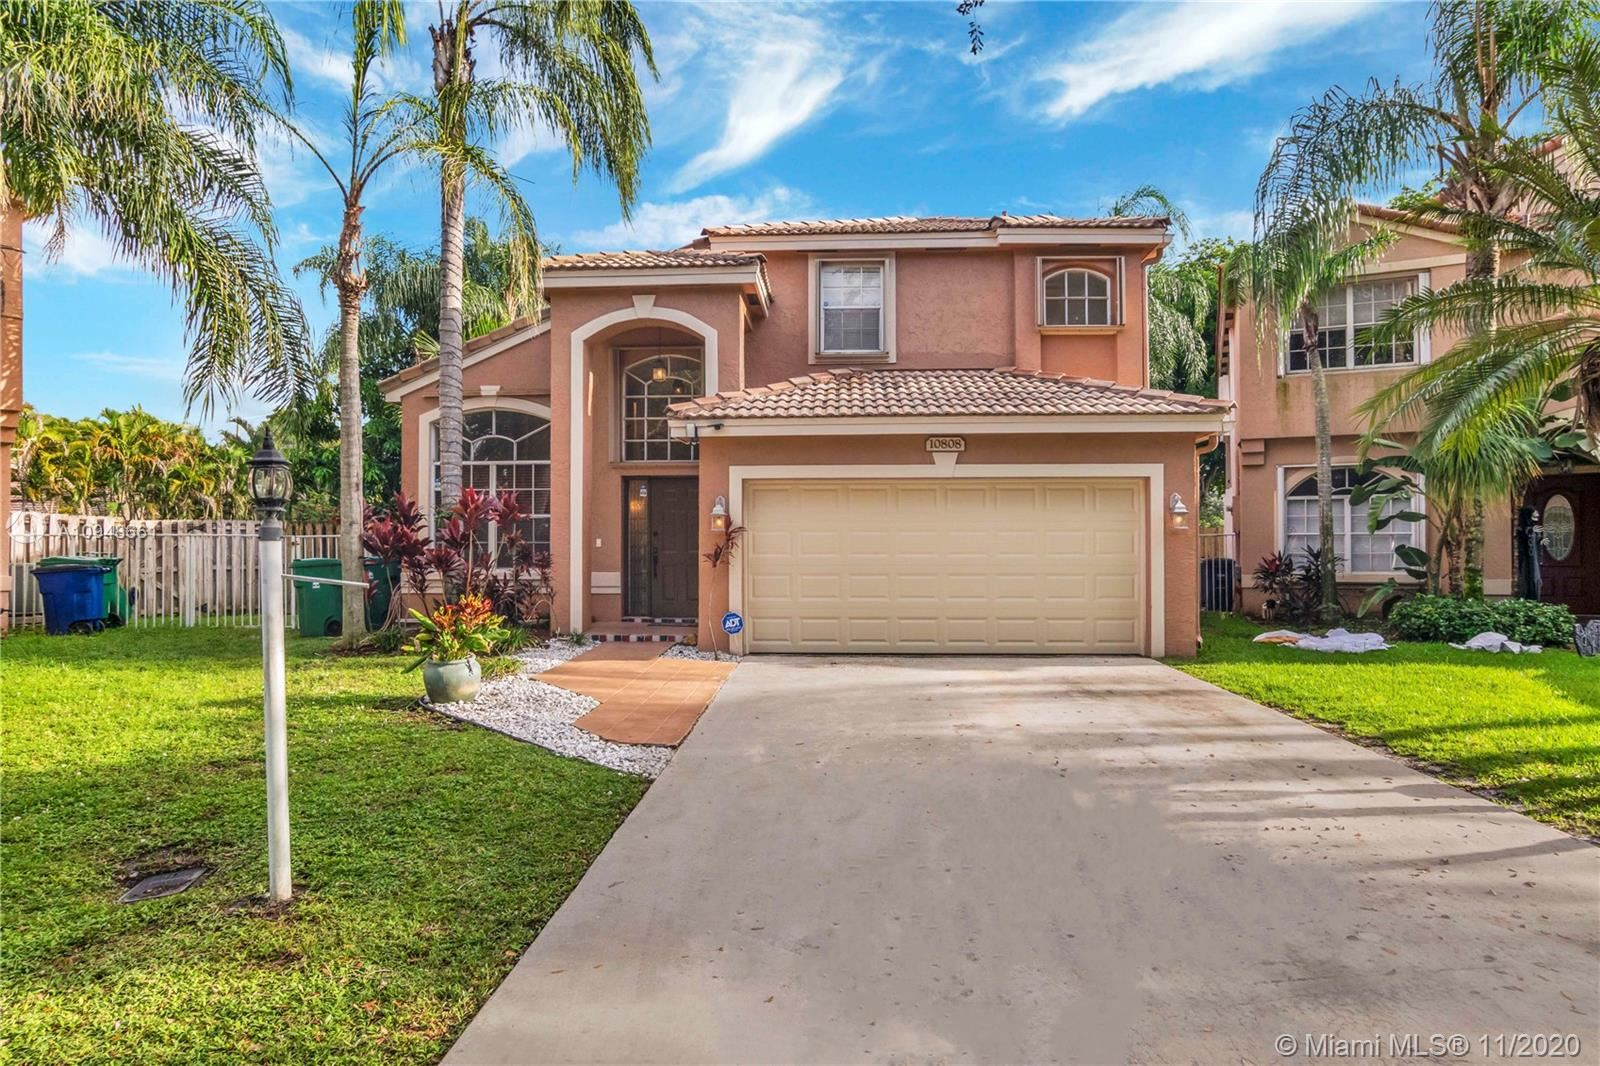 Photo of 10808 Limeberry Dr, Cooper City, FL 33026 (MLS # A10948661)